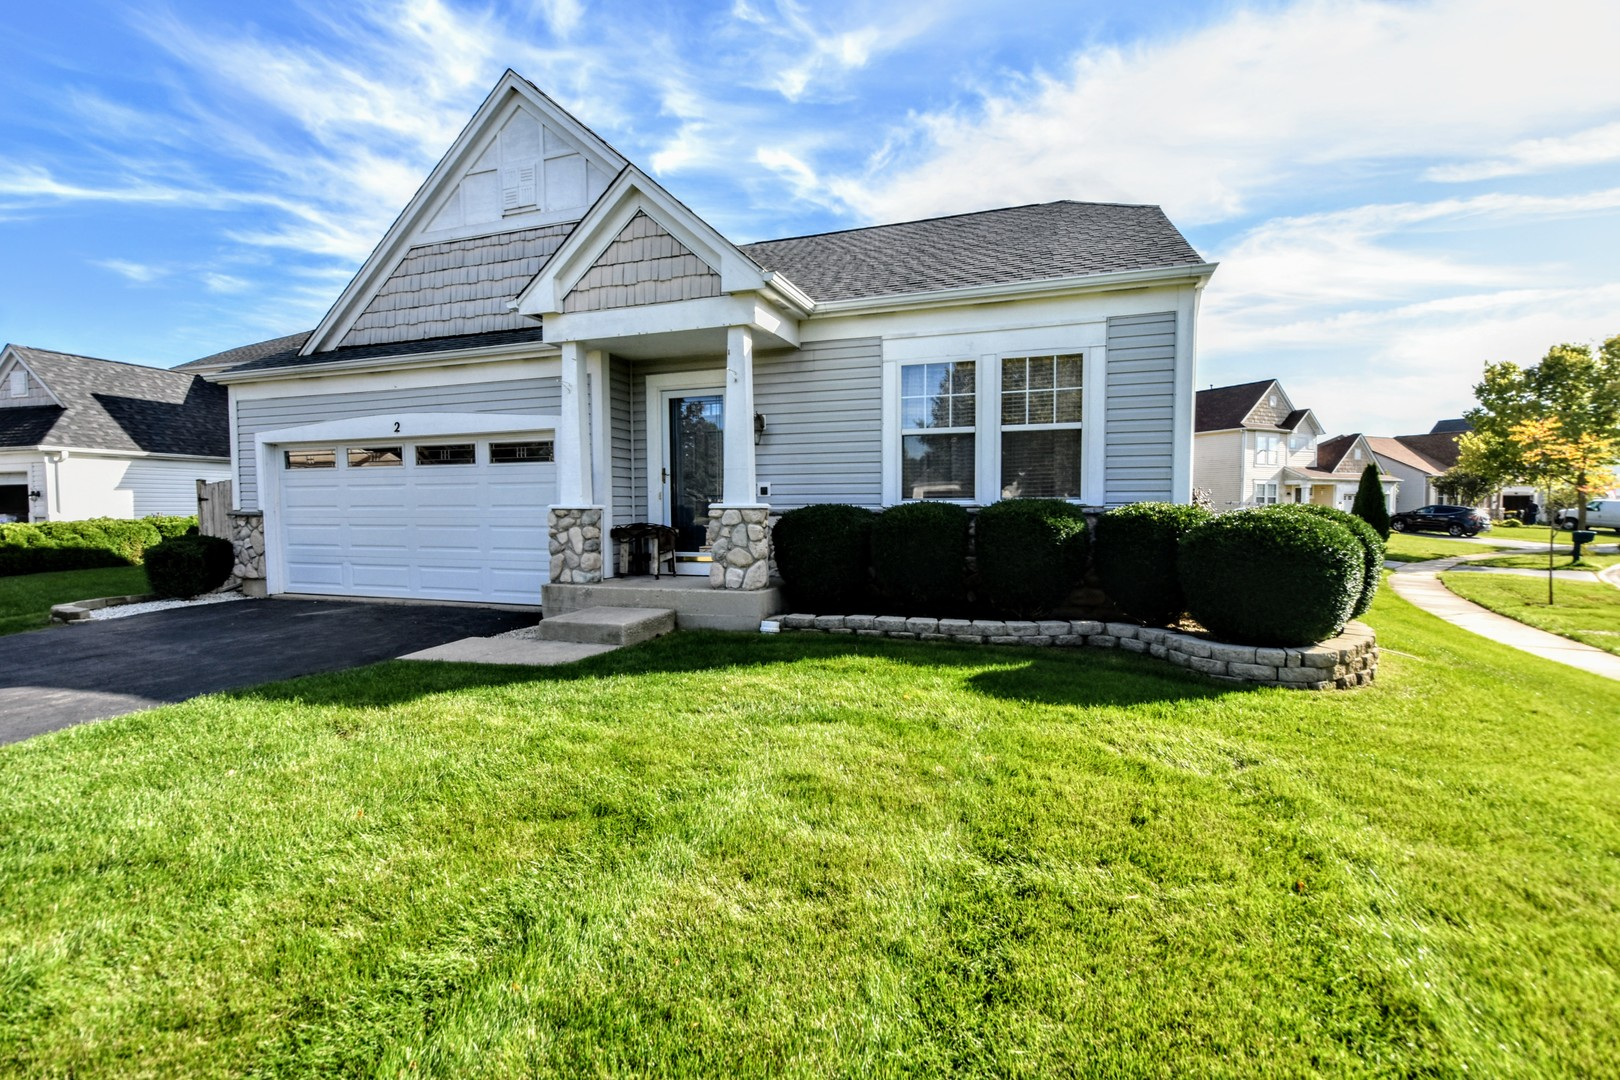 Photo for 2 Wexford Court, Lake In The Hills, IL 60156 (MLS # 10564507)